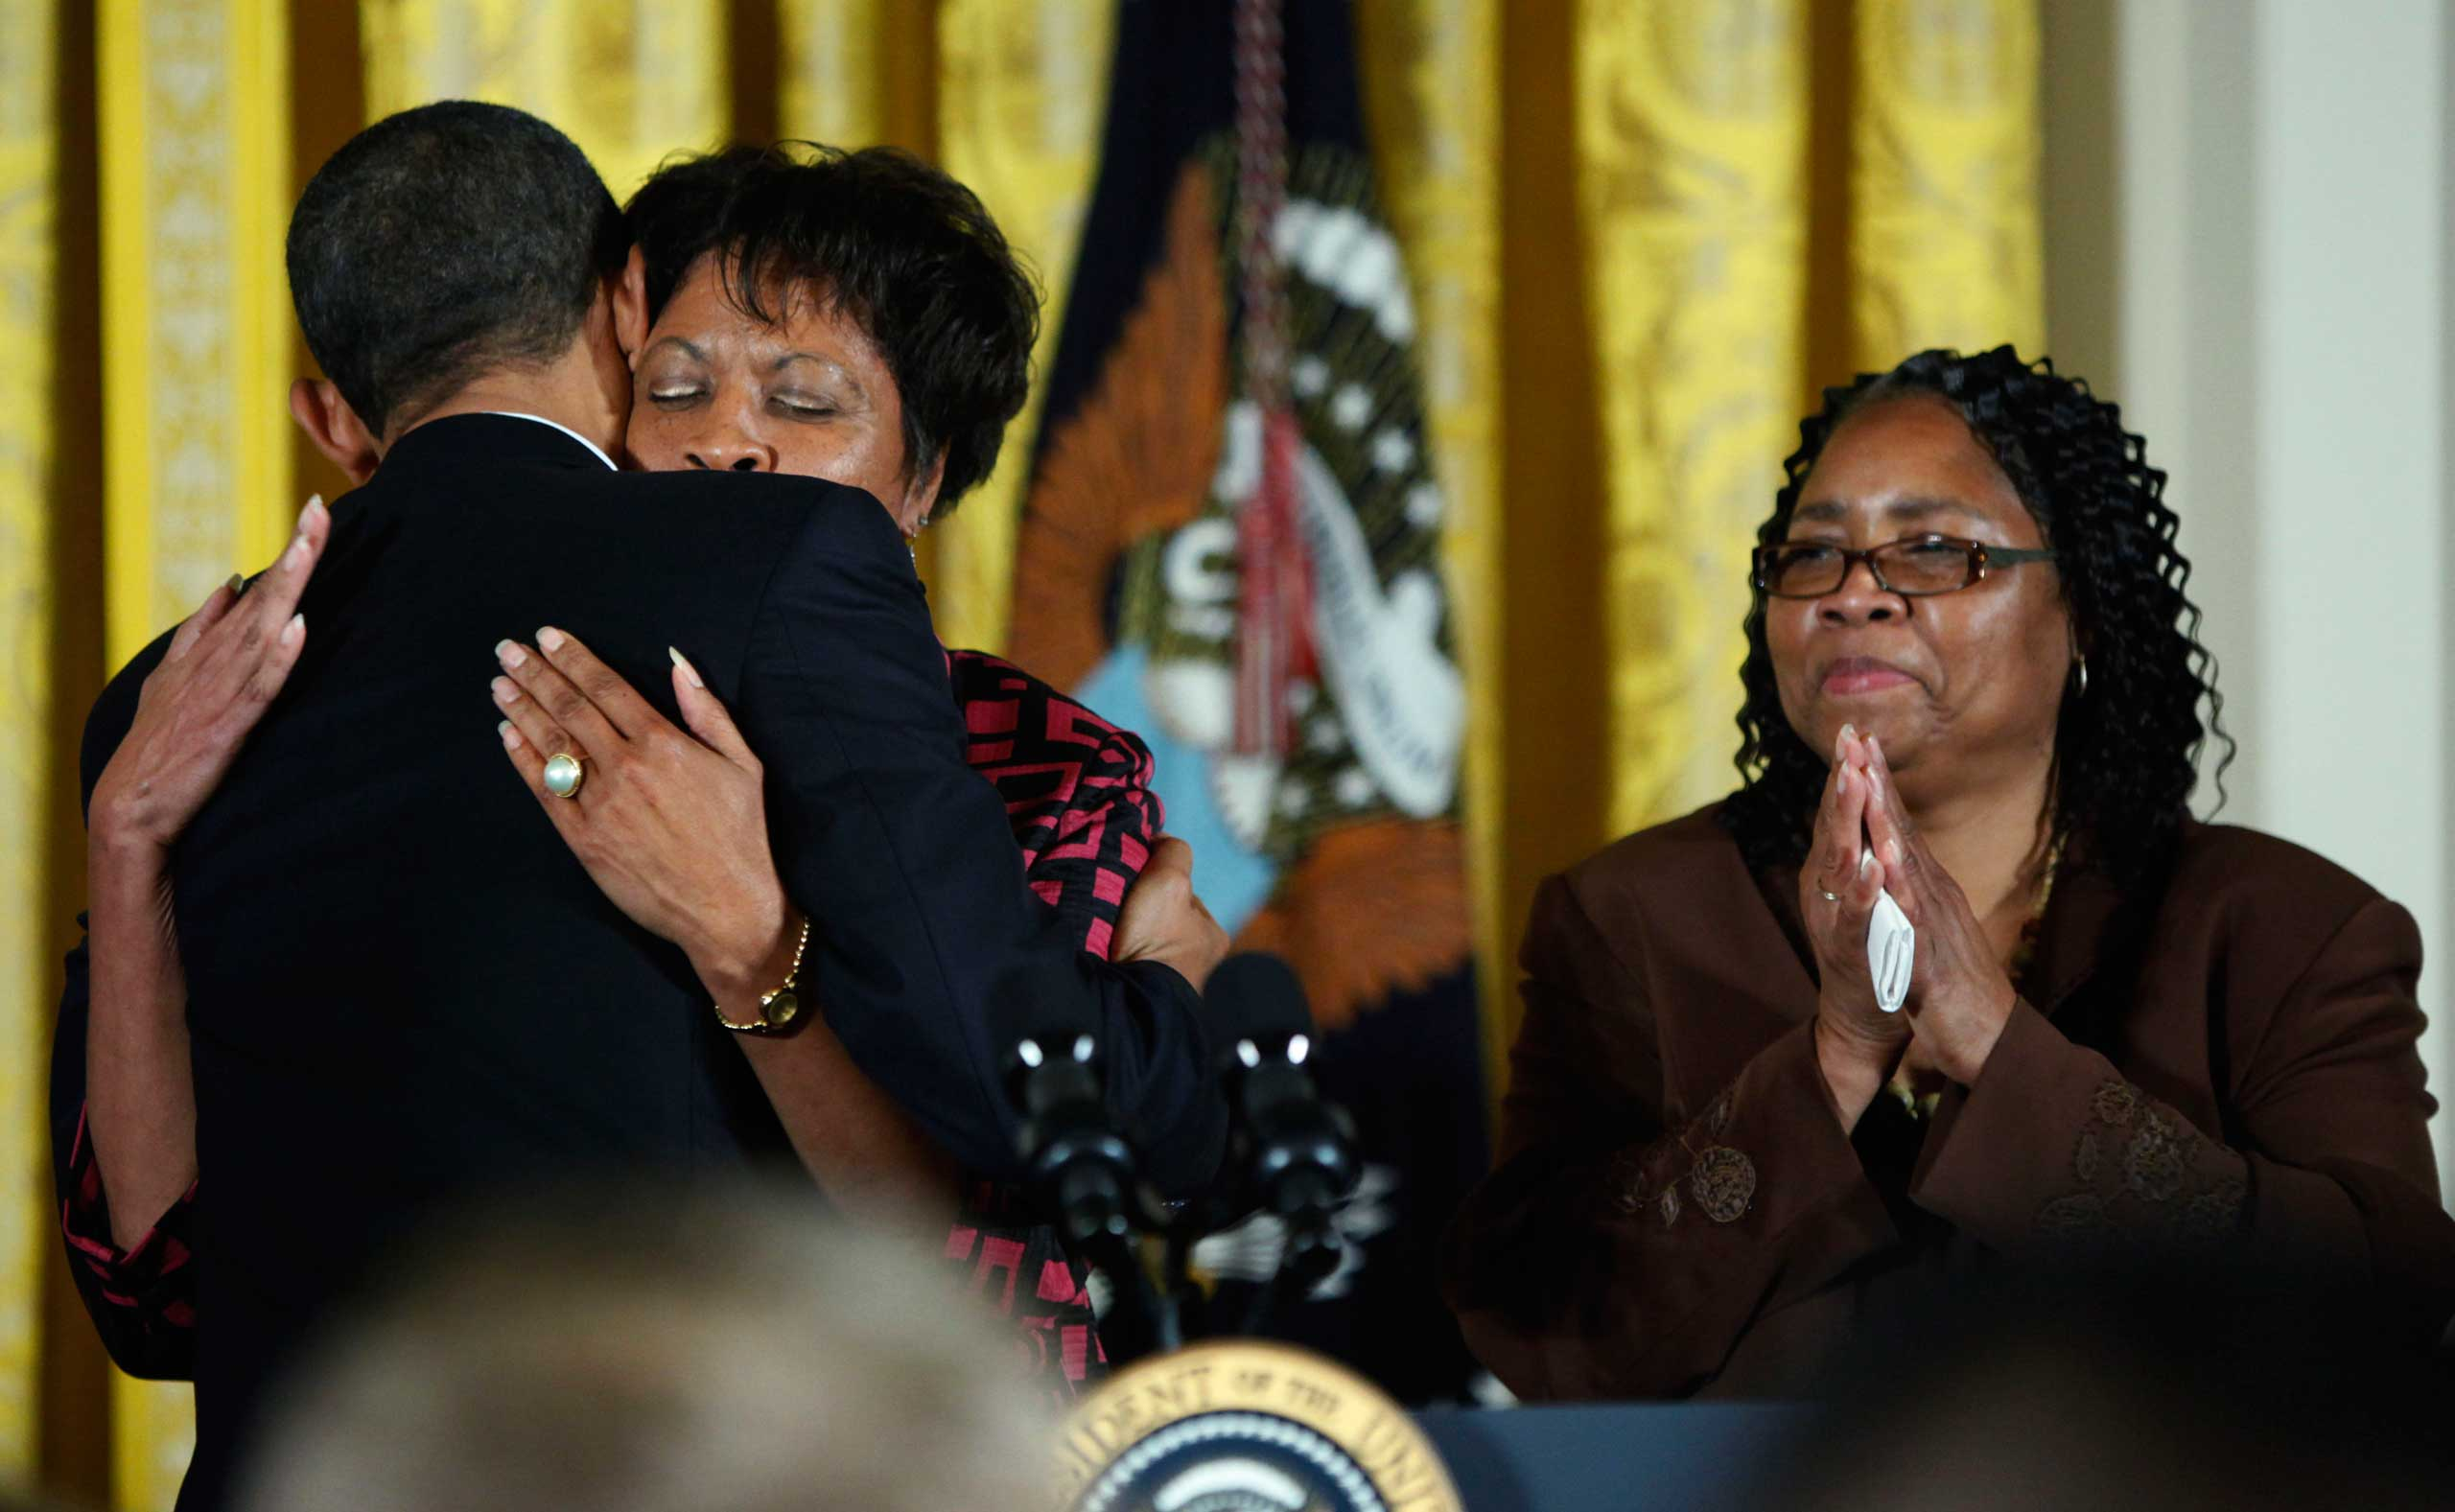 President Barack Obama hugs James Byrd Jr.'s sister, Louvon Harris during a White House reception commemorating the enactment of the Matthew Shepard and James Byrd Jr. Hate Crimes Prevention Act, in Washington on Oct. 28, 2009.